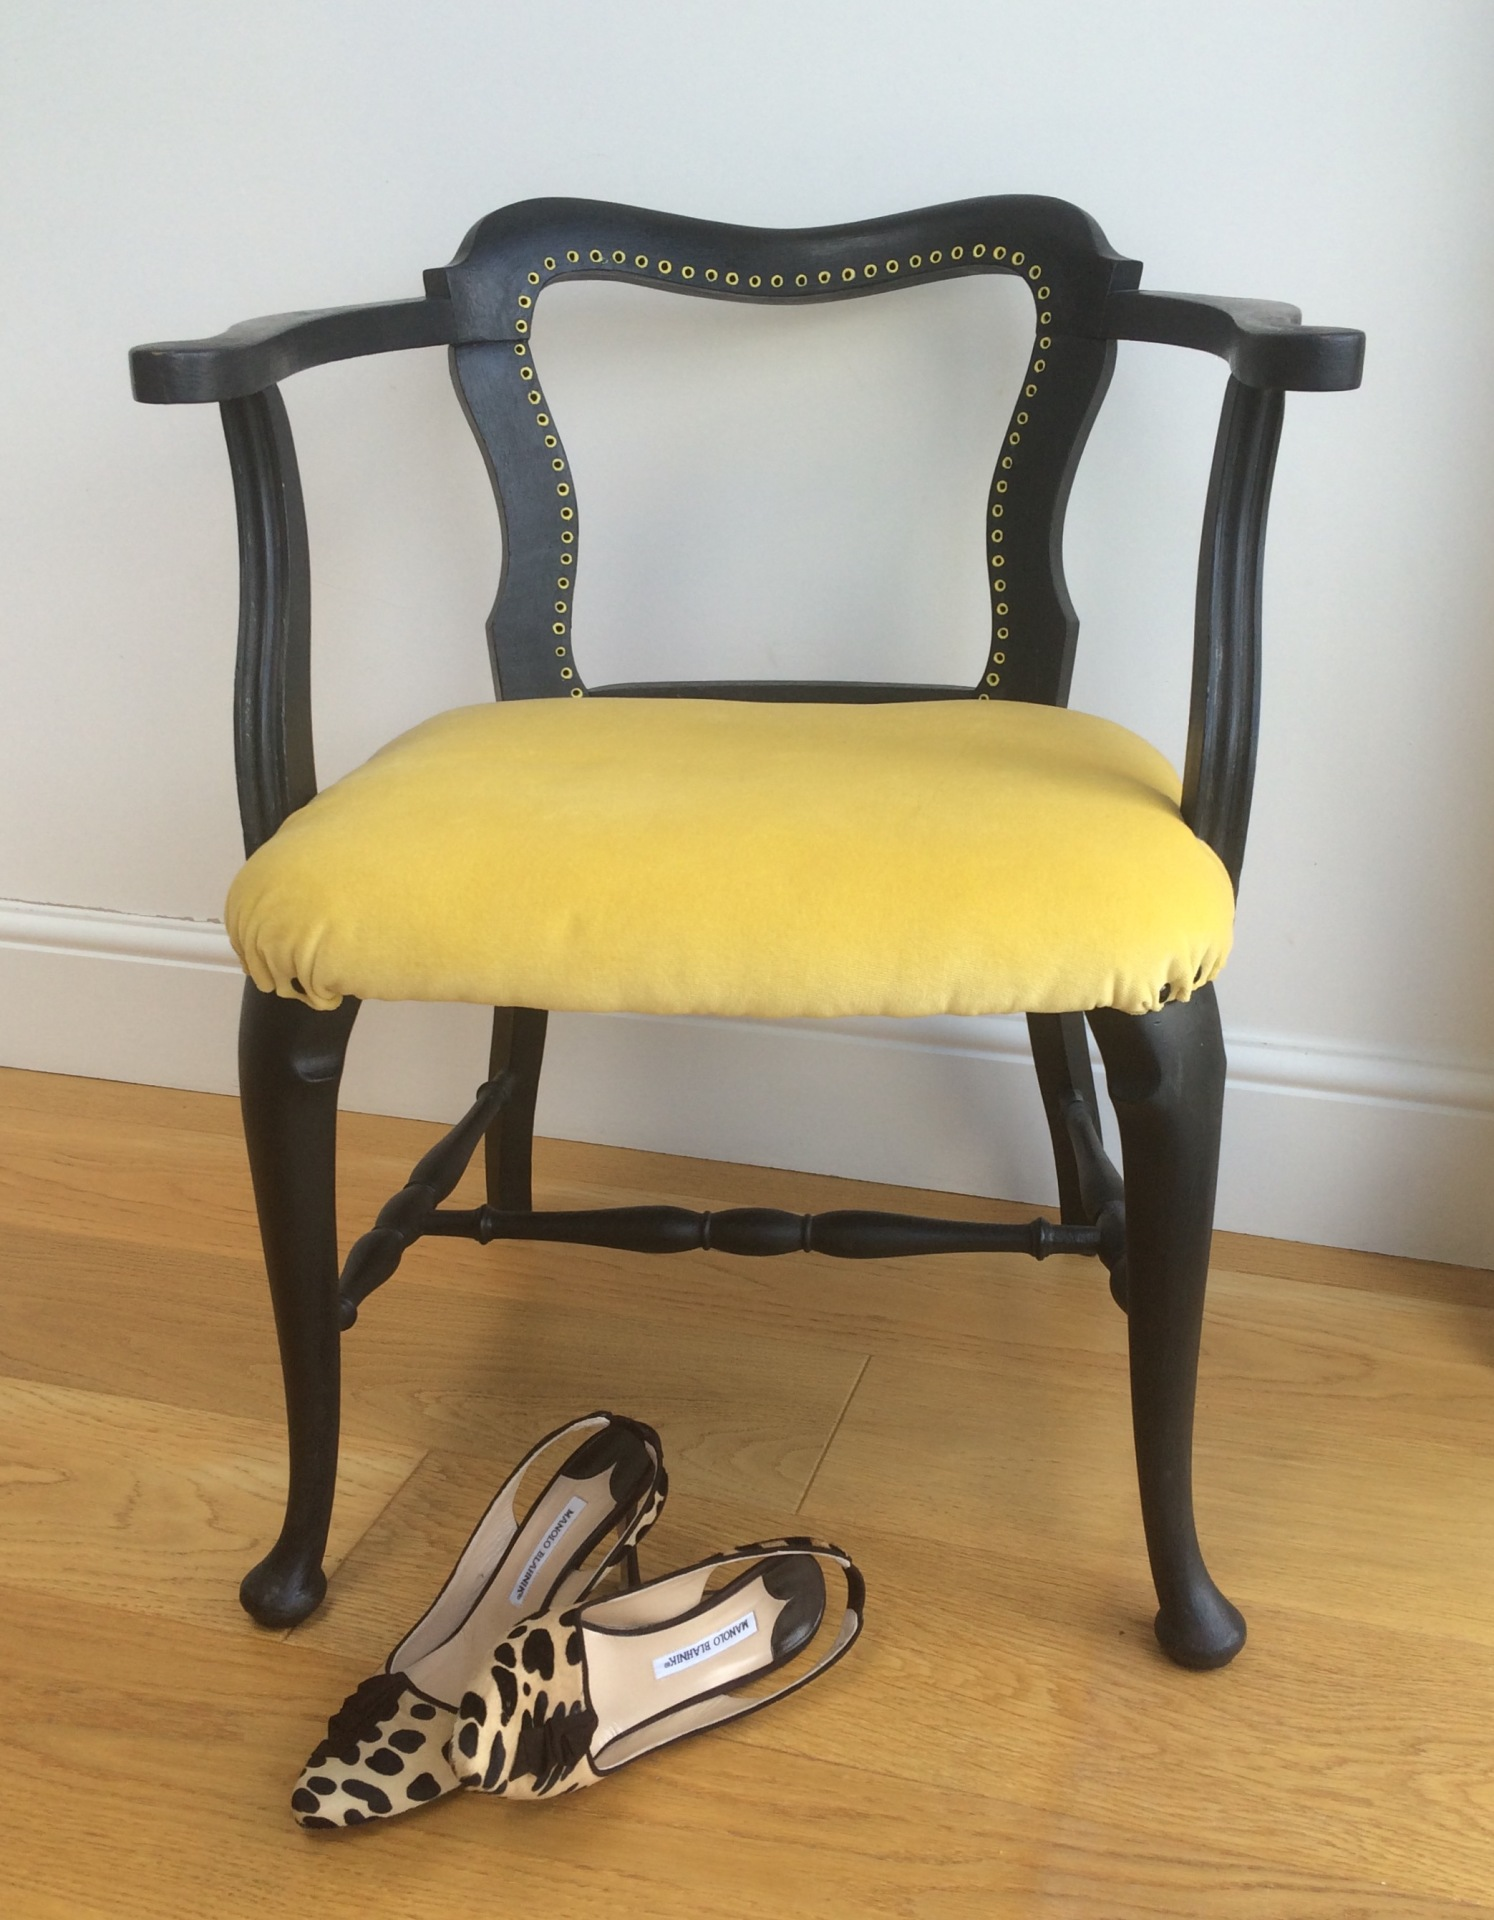 Refurbished Antique Chair